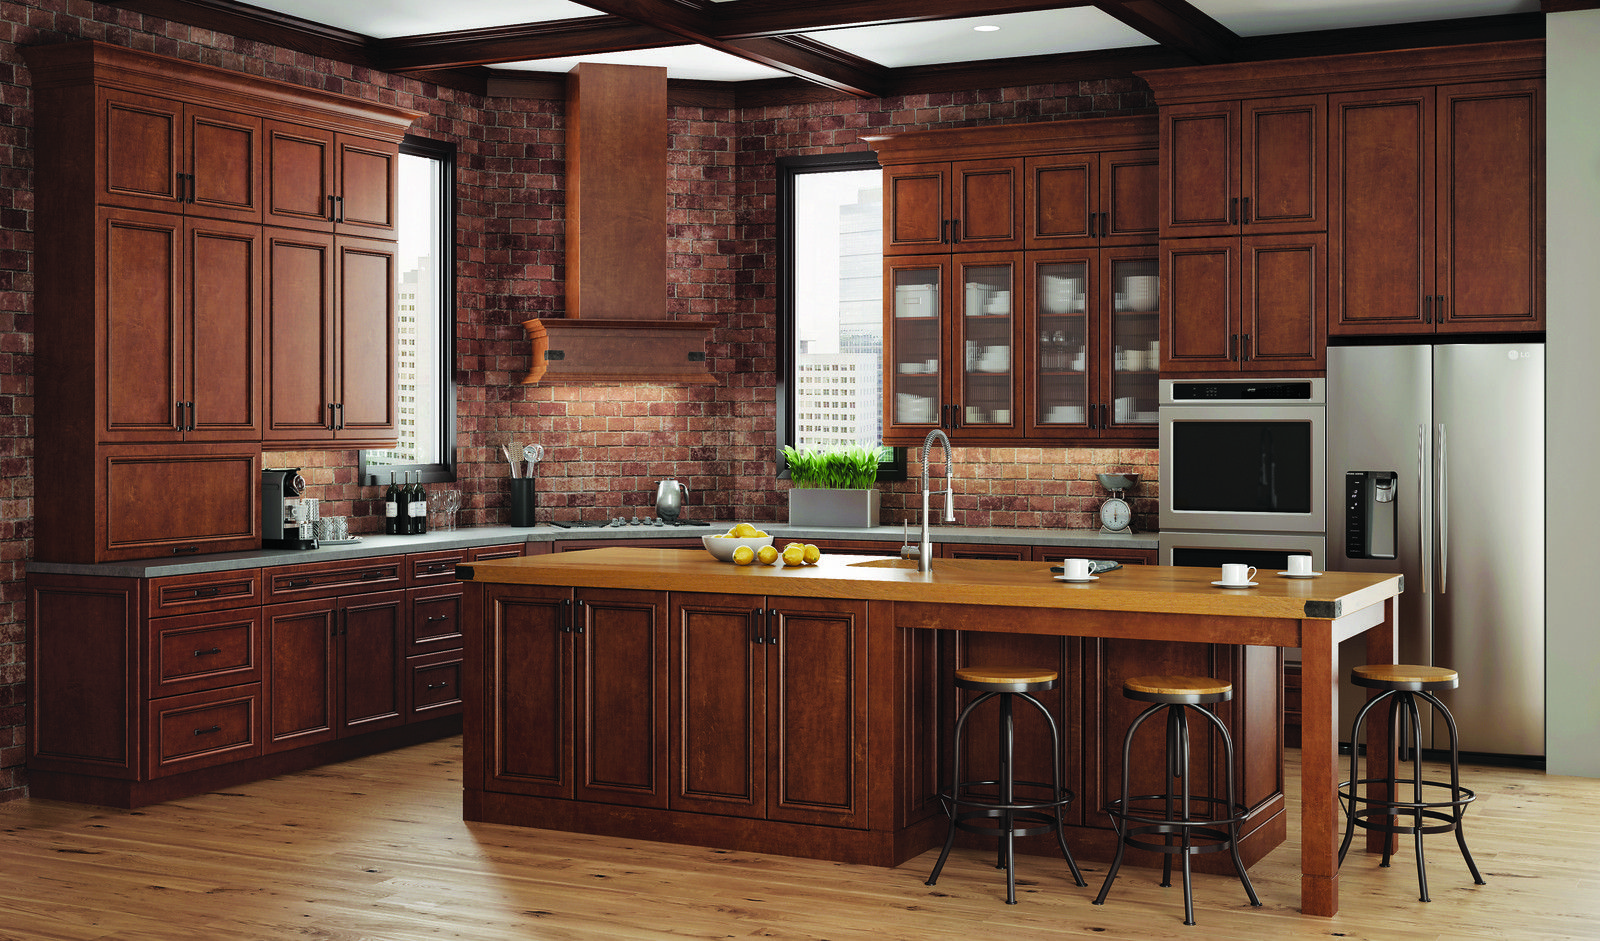 Kitchen Gallery Quality Kitchen Cabinets Free Kitchen Design Kitchen Interior